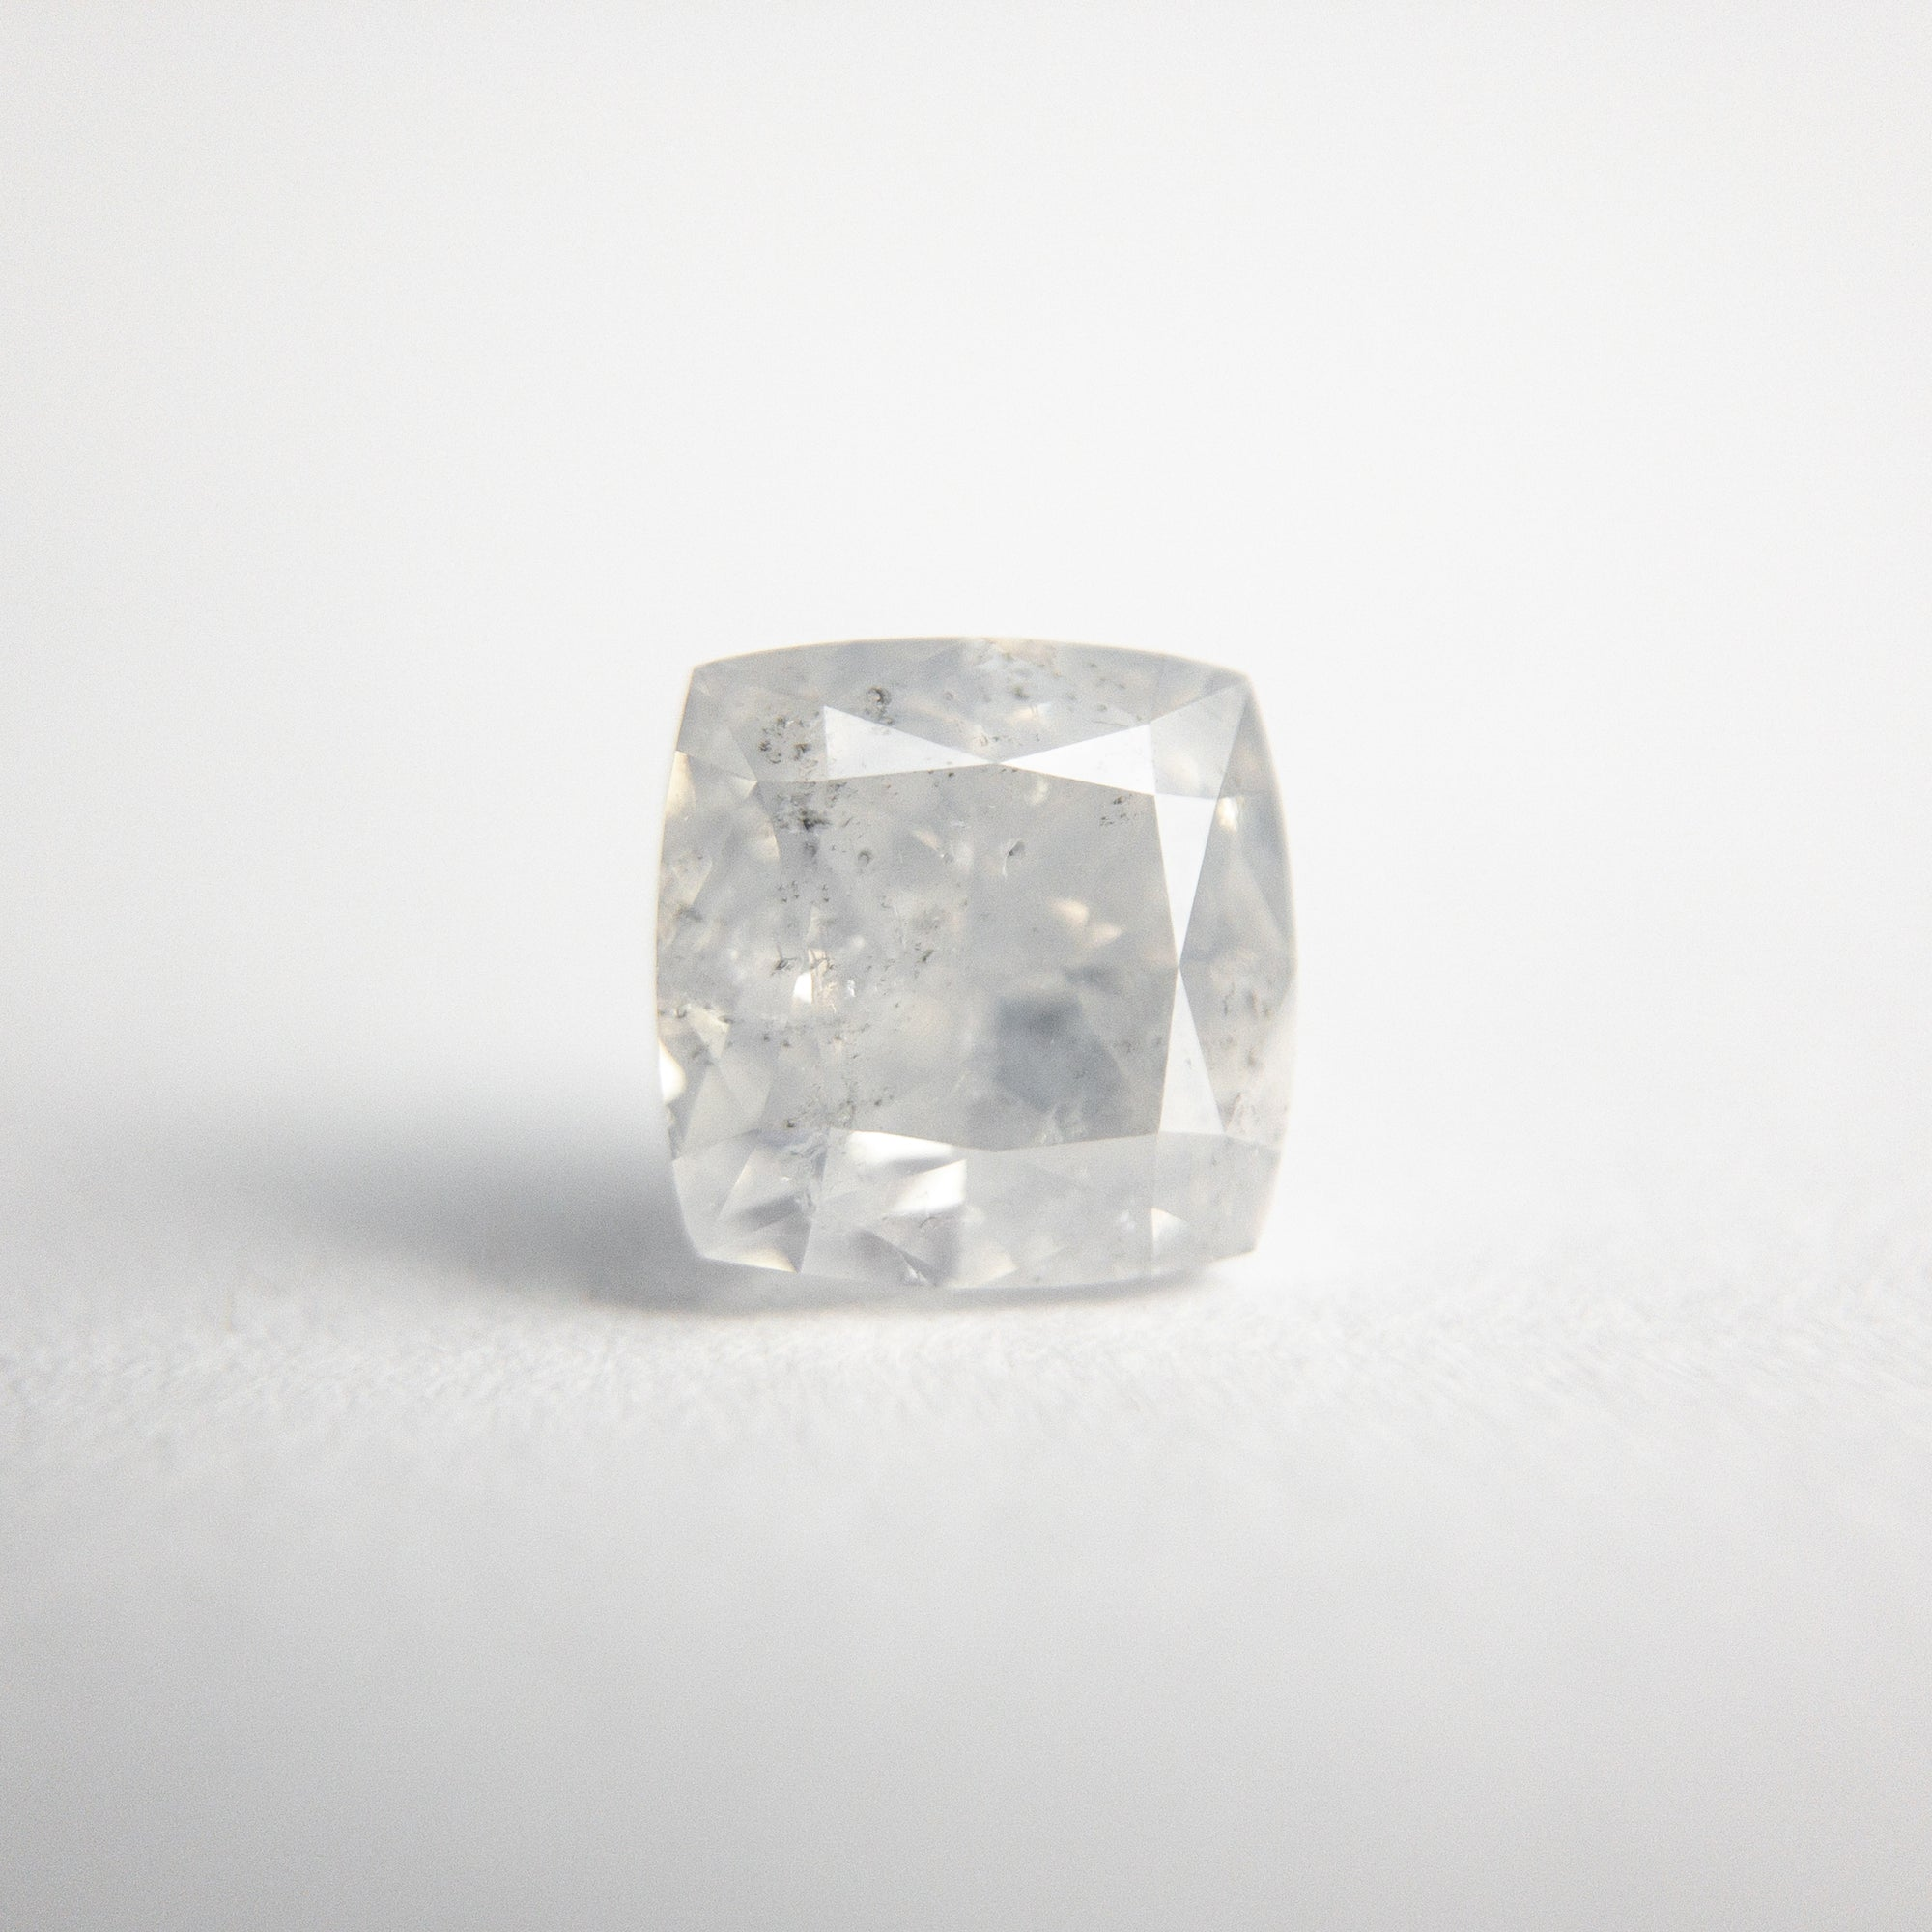 1.24ct 5.72x5.75x3.92mm Cushion Brilliant 18733-02